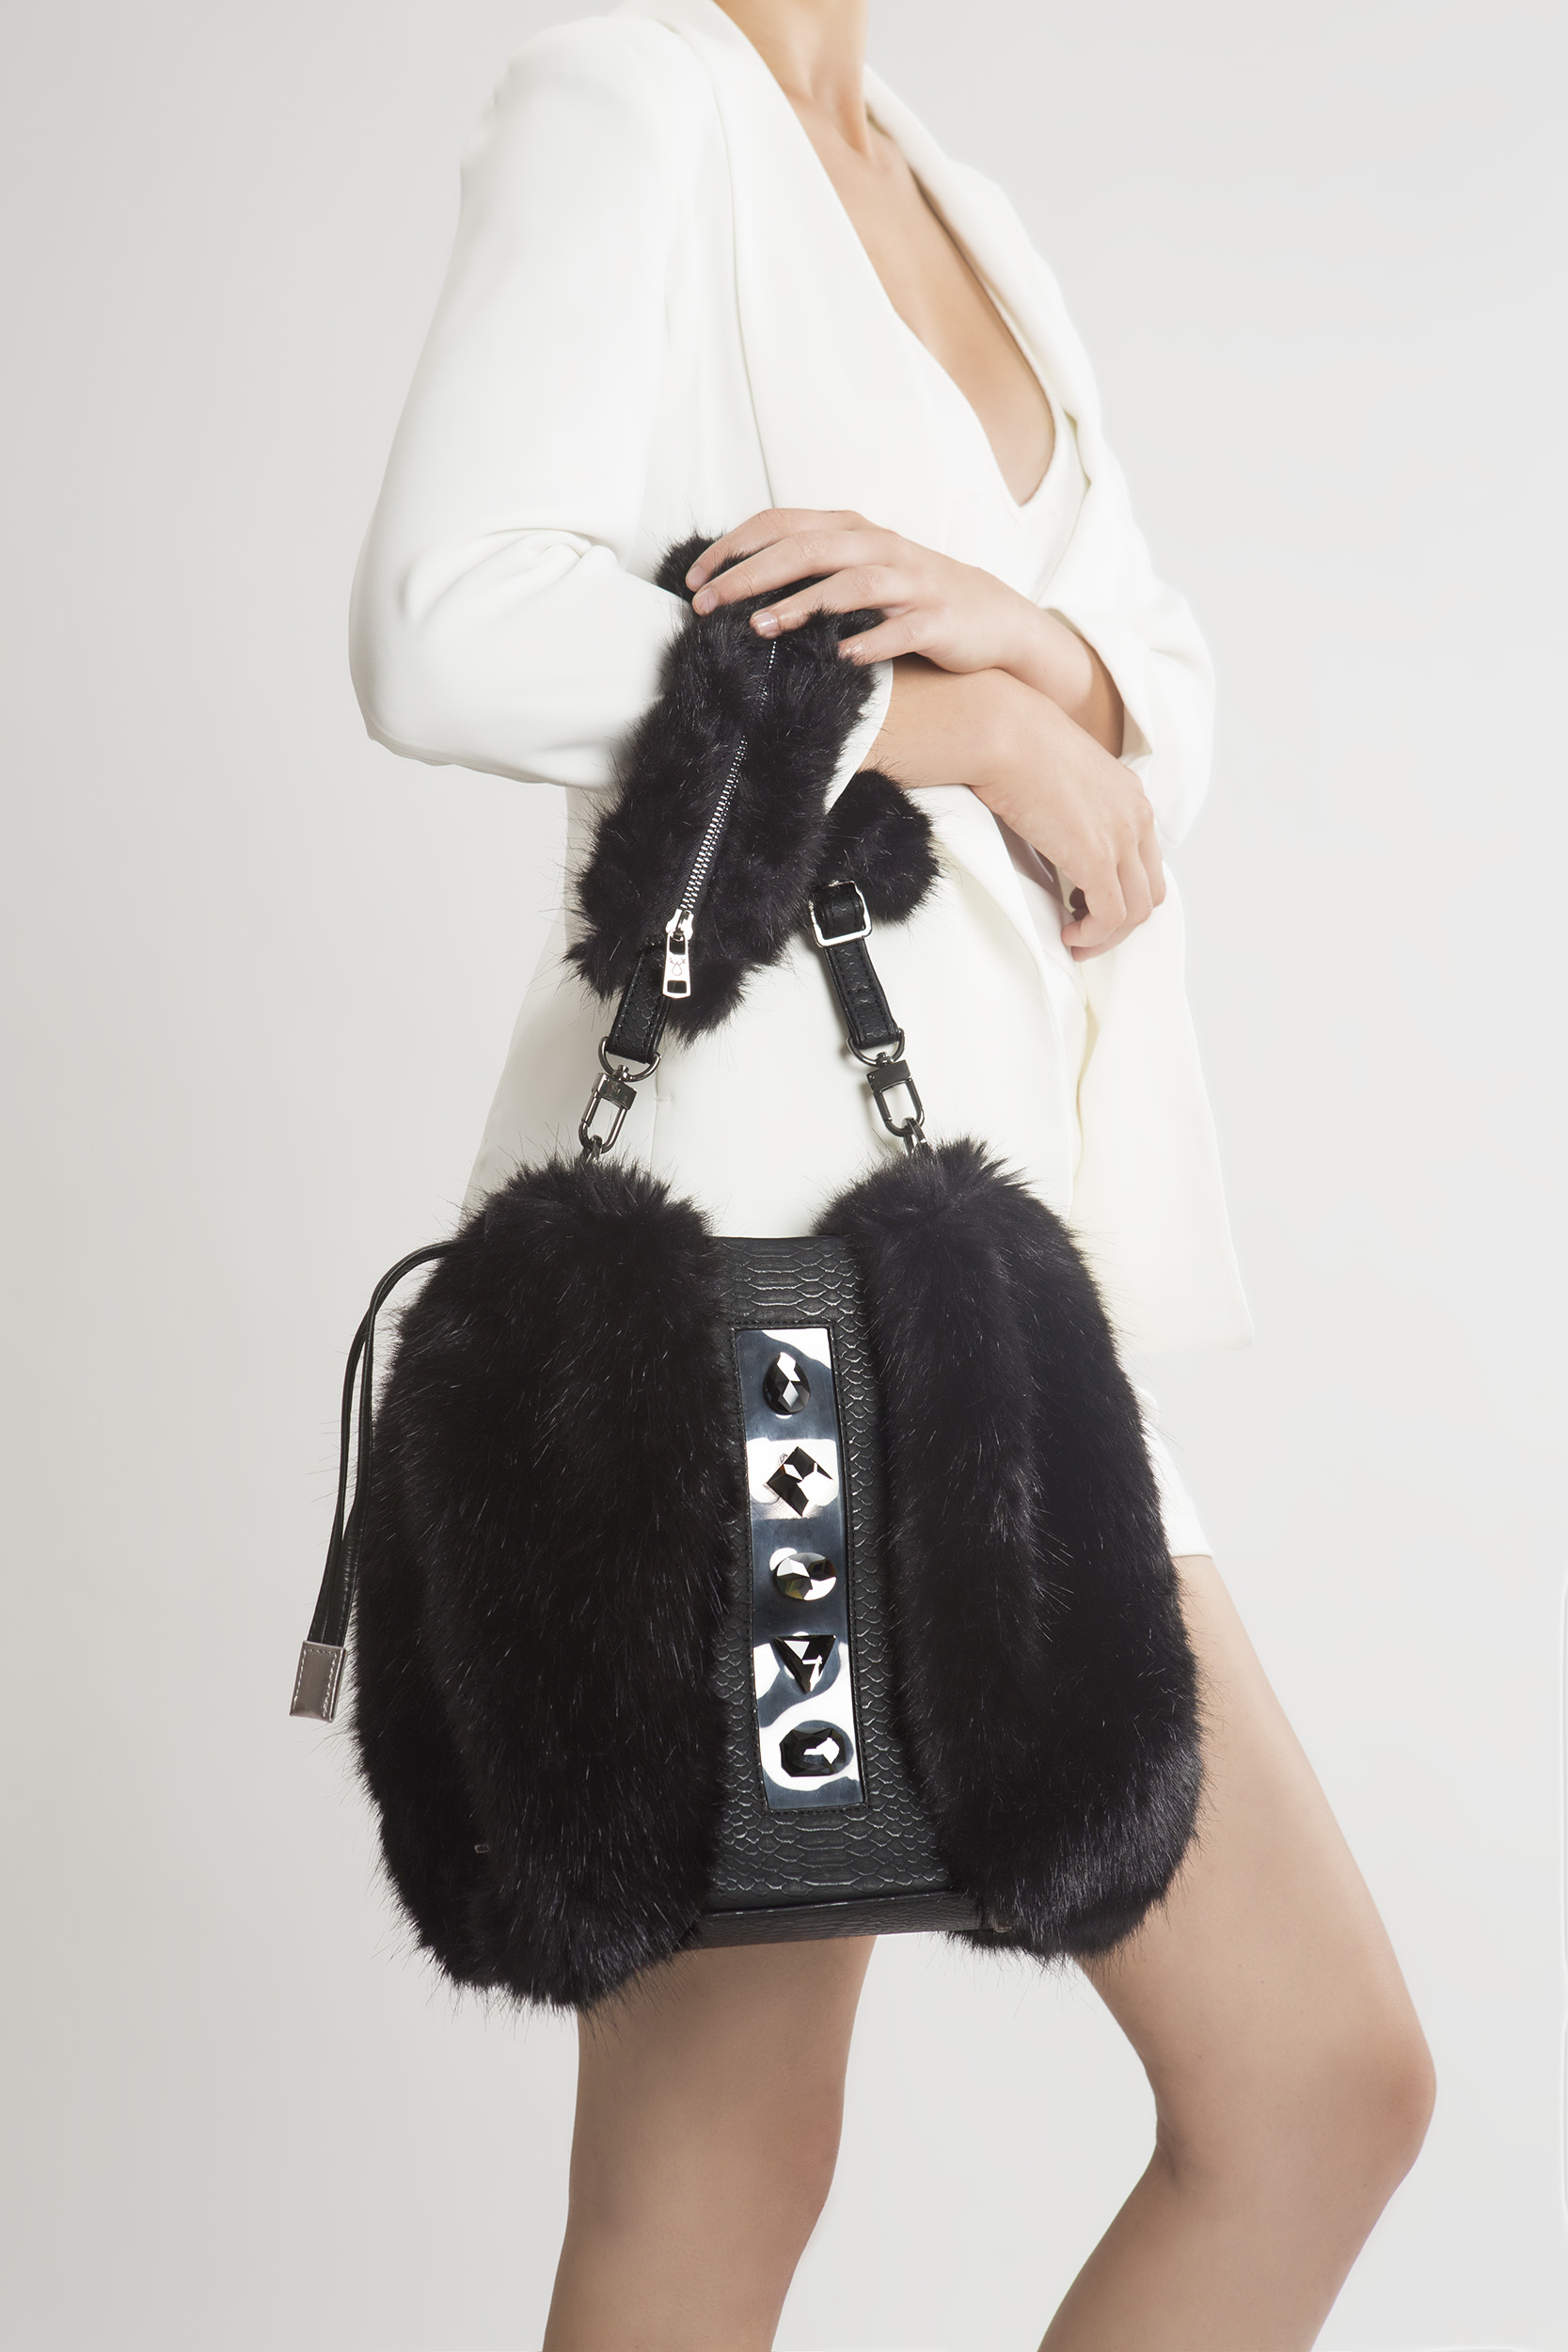 FruitenVeg-KULU bag-vegan-faux fur satchel bag-fake-fur-black-rhinestones-luxury-tote-bag-nyc-designer.jpg